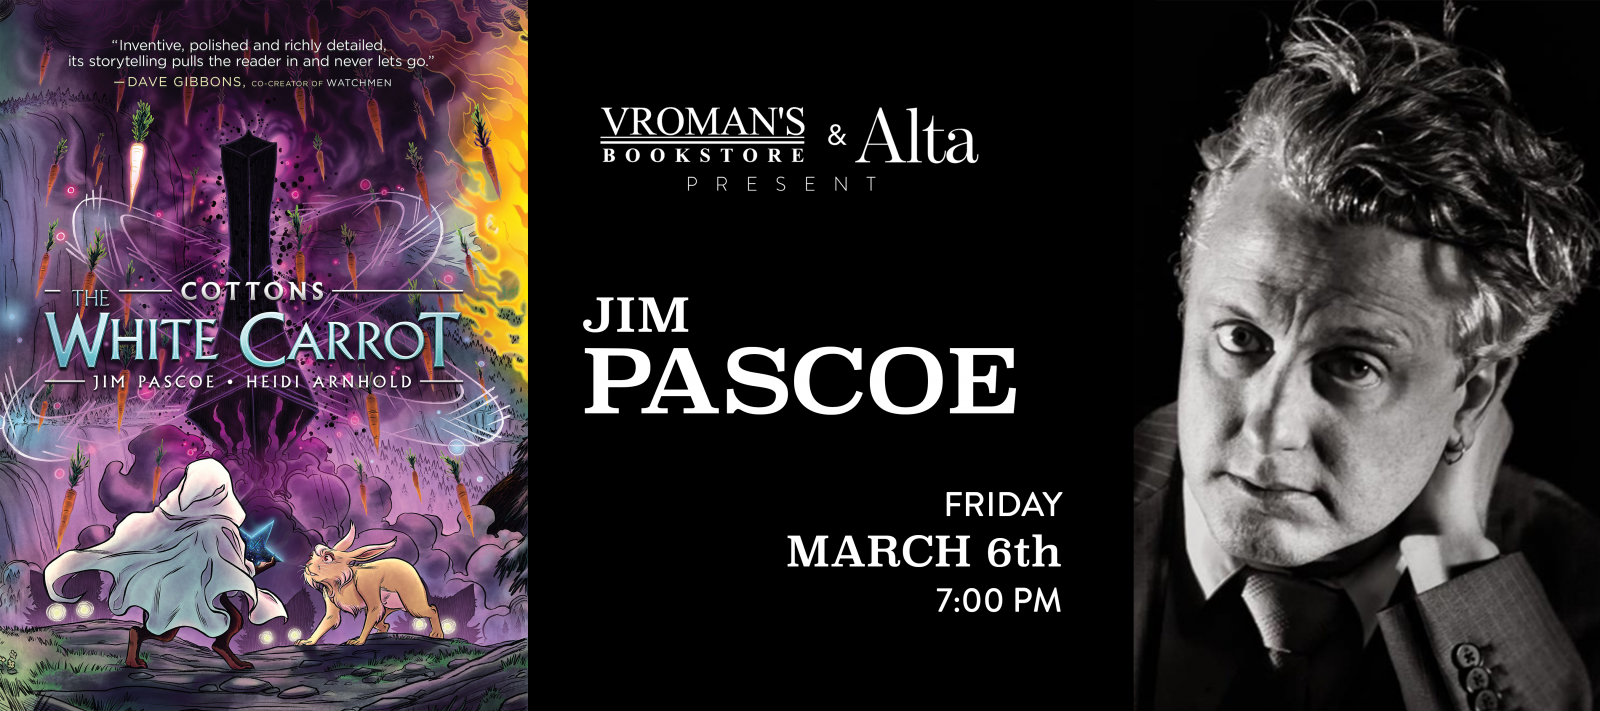 Jim Pascoe book signing Friday, March 6, at 7pm